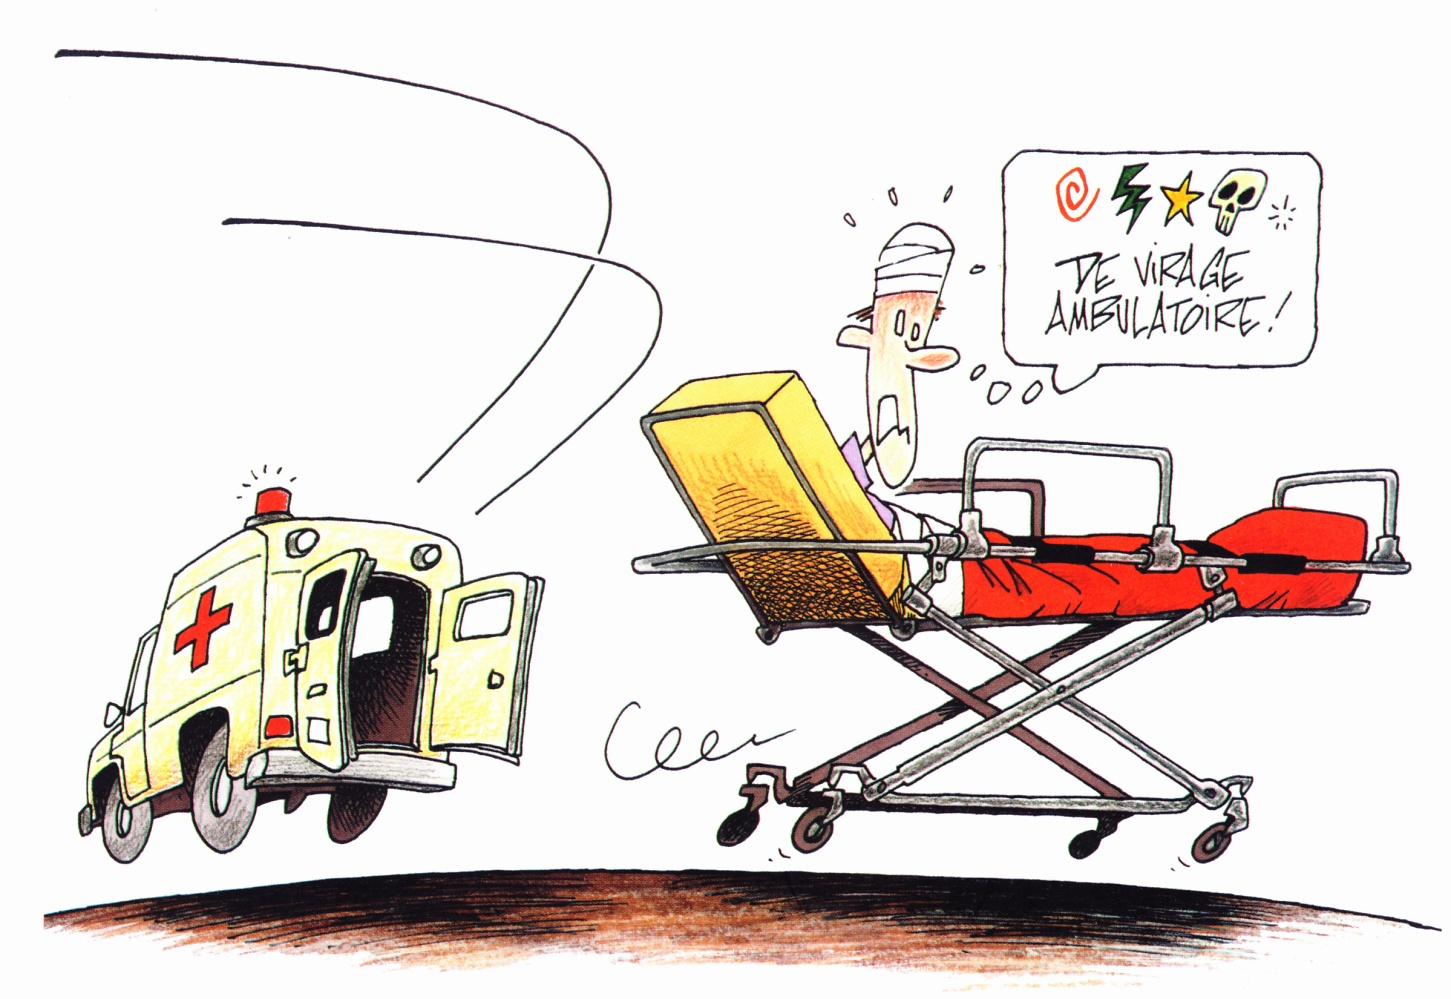 C:\Users\Robert\Documents\CARTOONING ILLUSTRATION ANIMATION\IMAGE BY CARTOONIST\B\BADEUAX Guy Bado 1997, bc.jpg